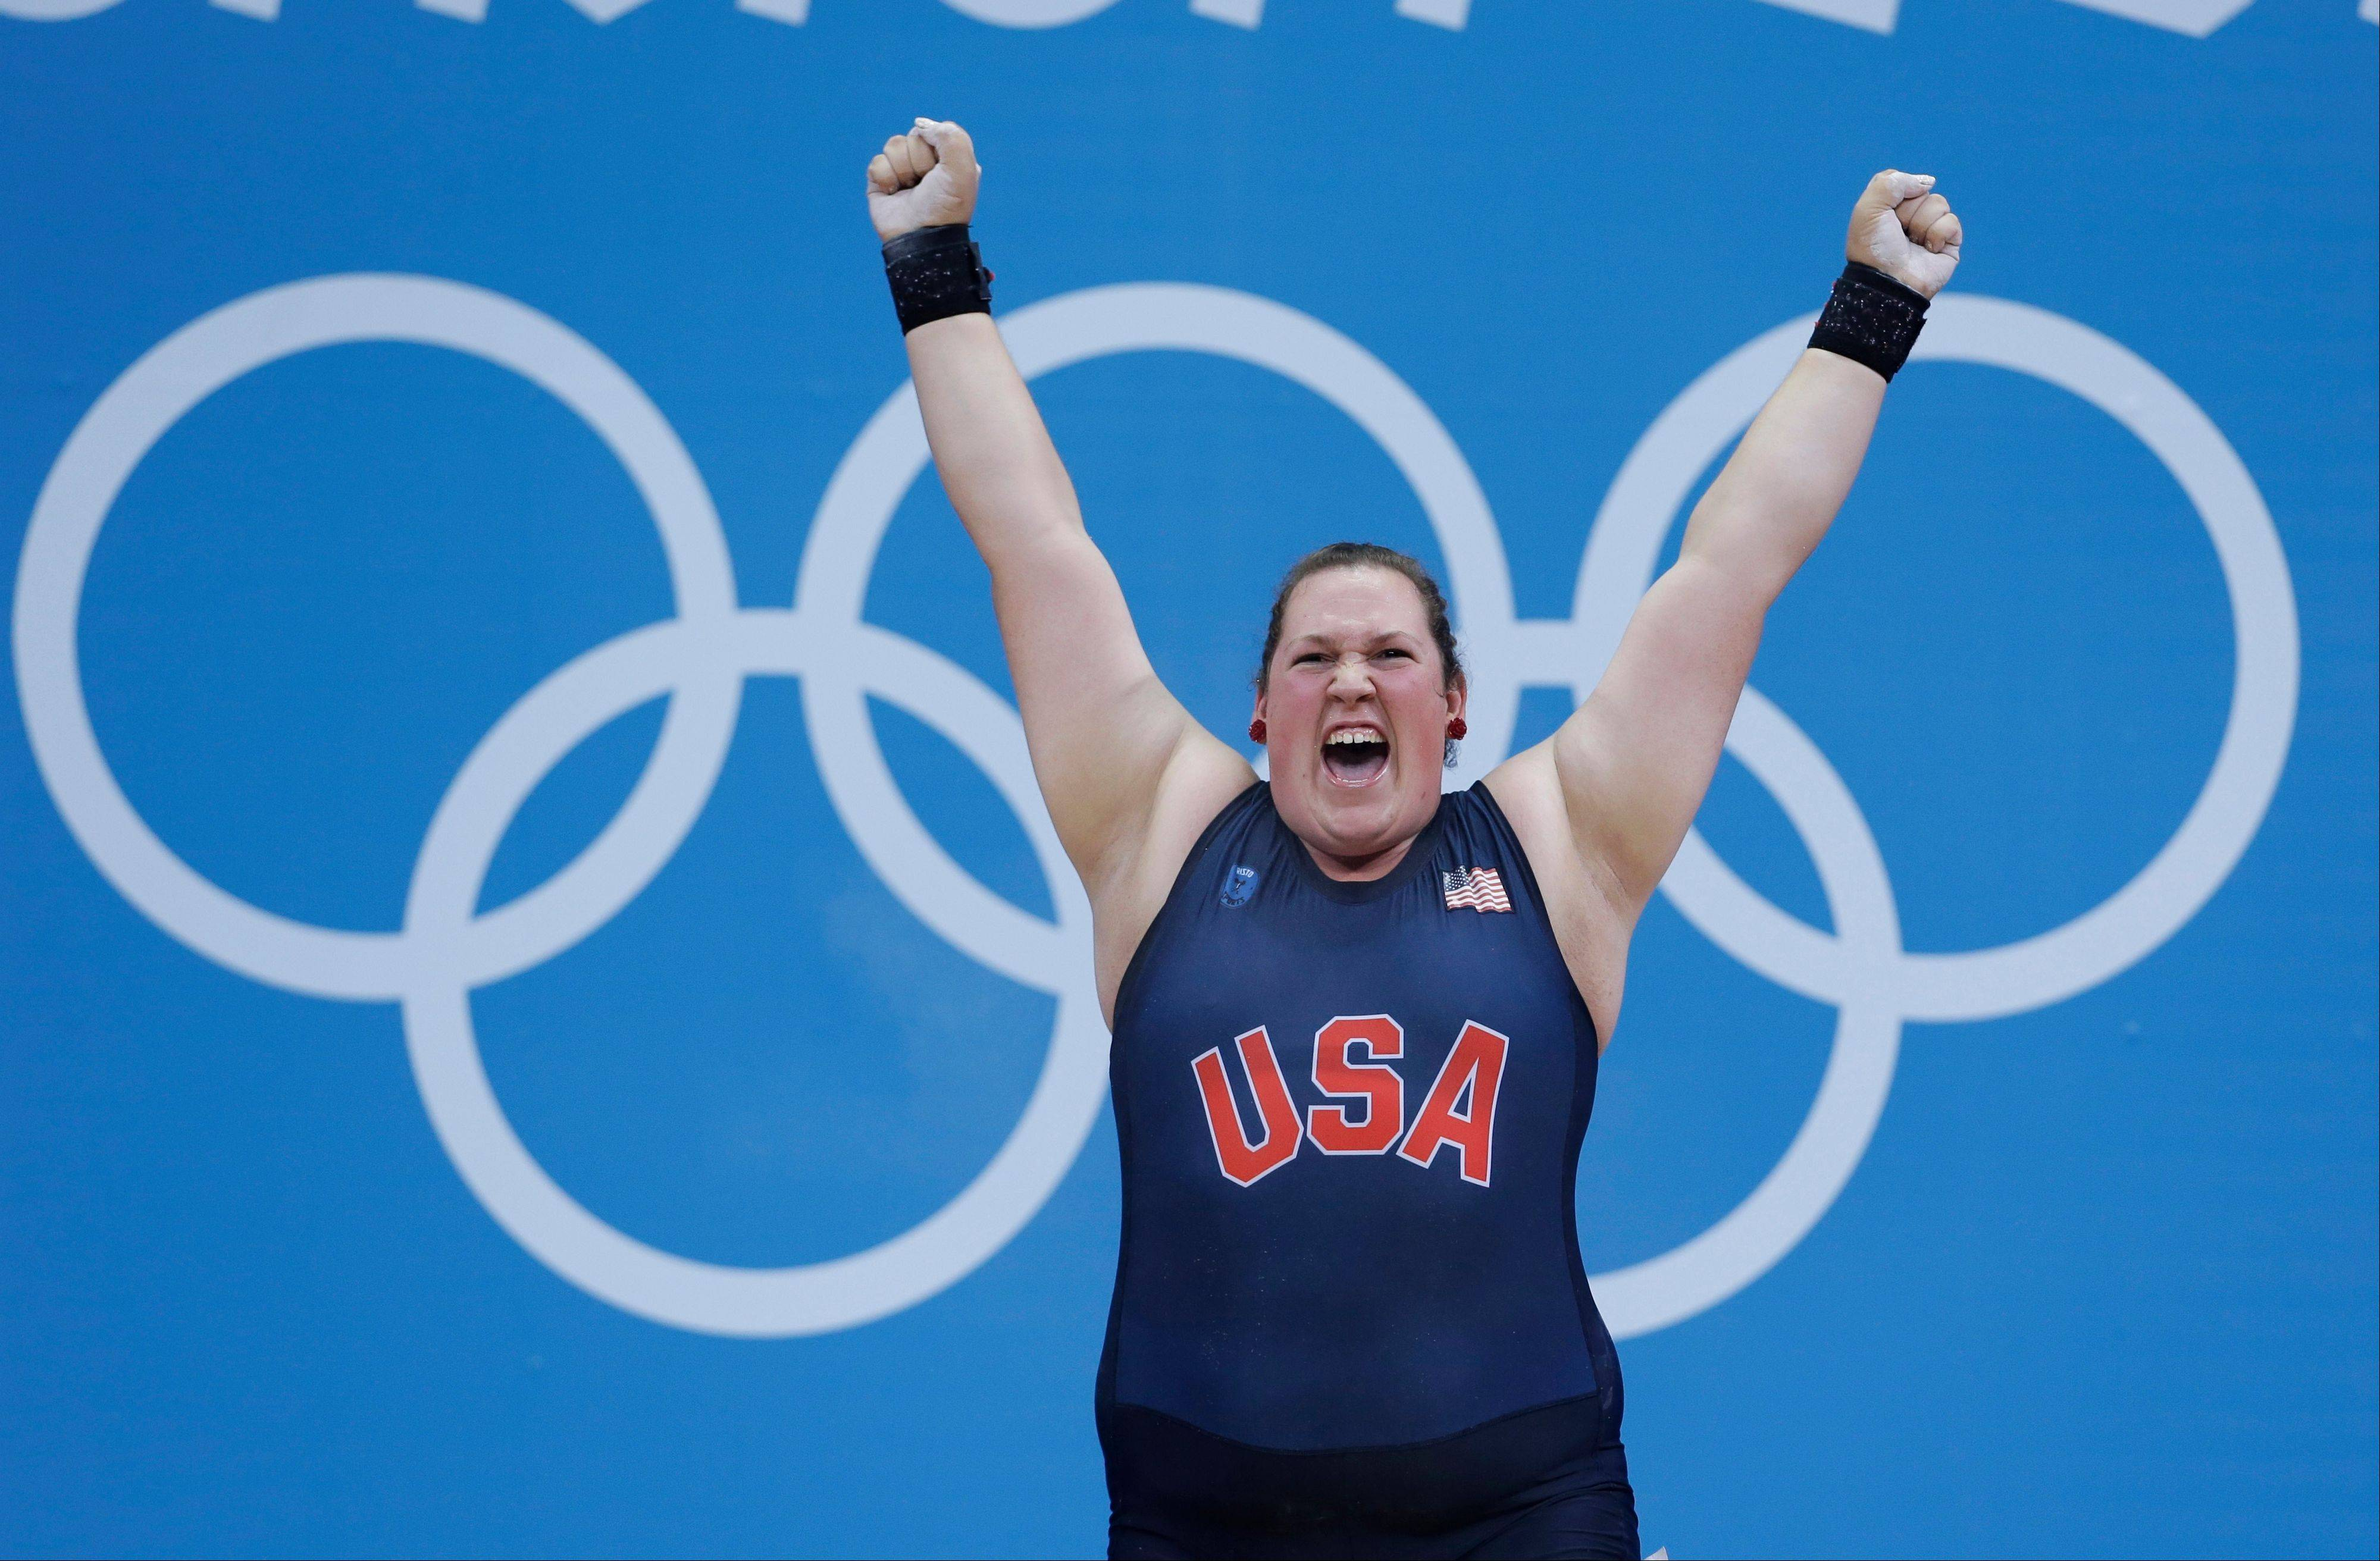 United States' Sarah Robles reacts following a lift during women's +75-kg, weightlifting competition at the 2012 Summer Olympics, Sunday, Aug. 5, 2012, in London.